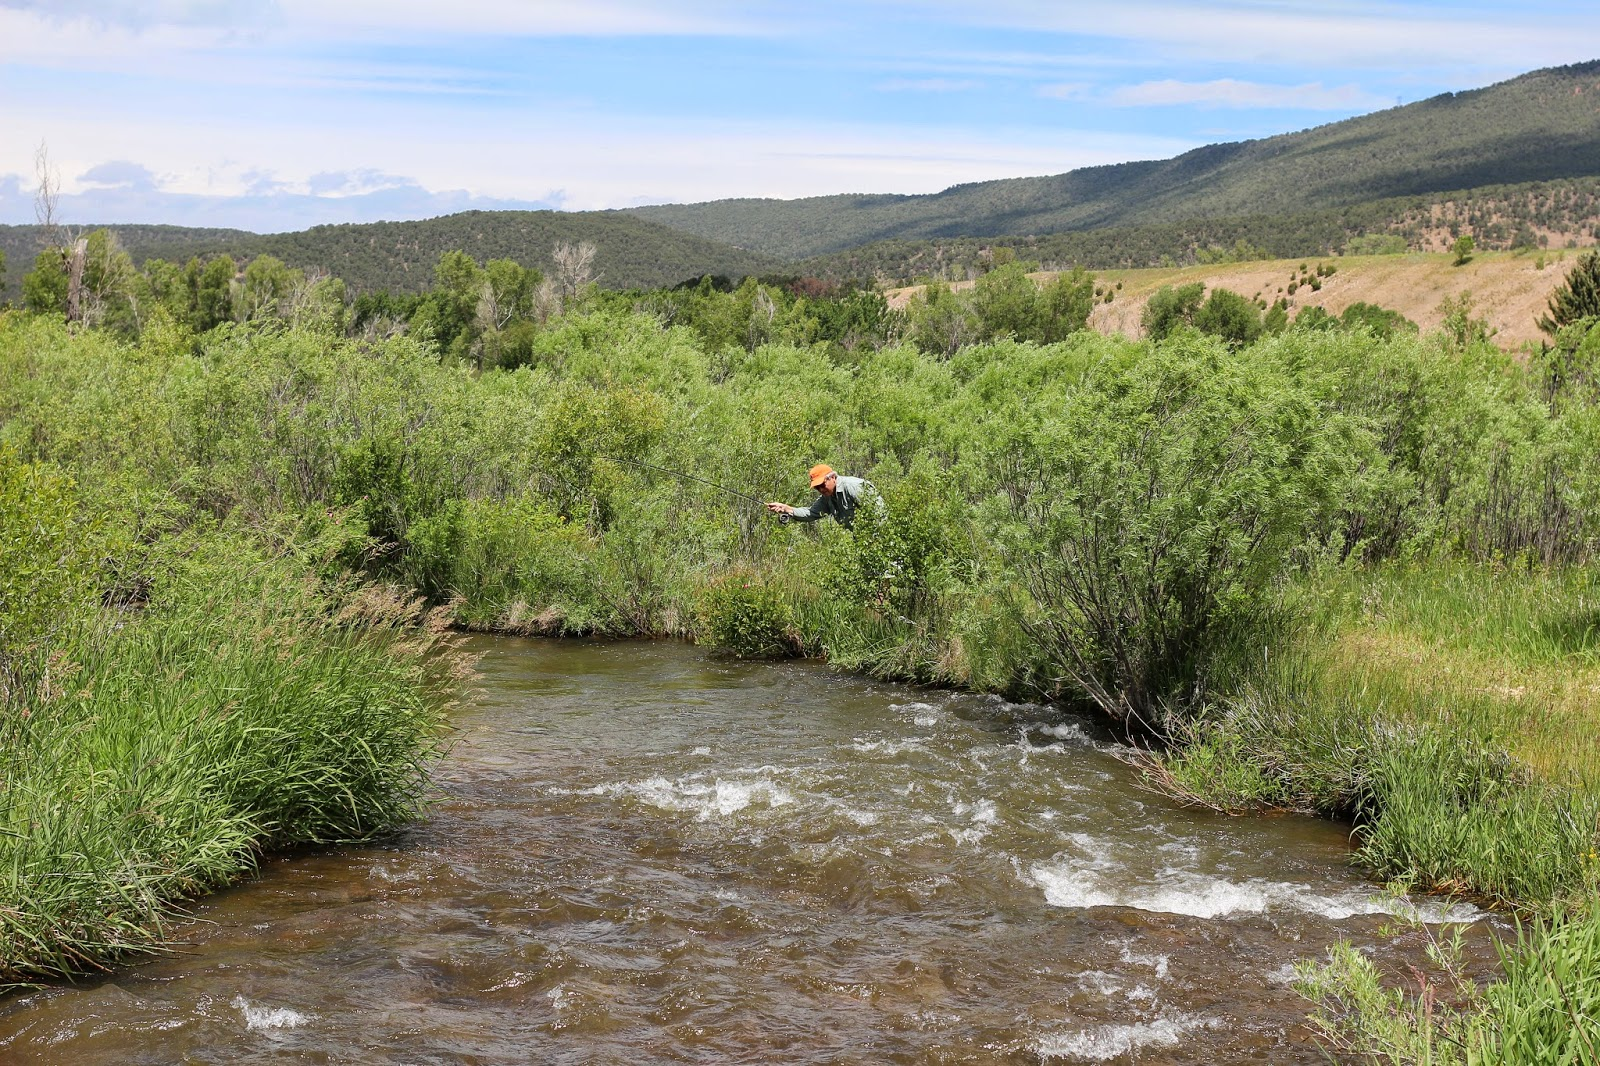 Fly+Fish+for+brown+trout+in+Colorado+with+Jay+Scott+Outdoors+4.JPG